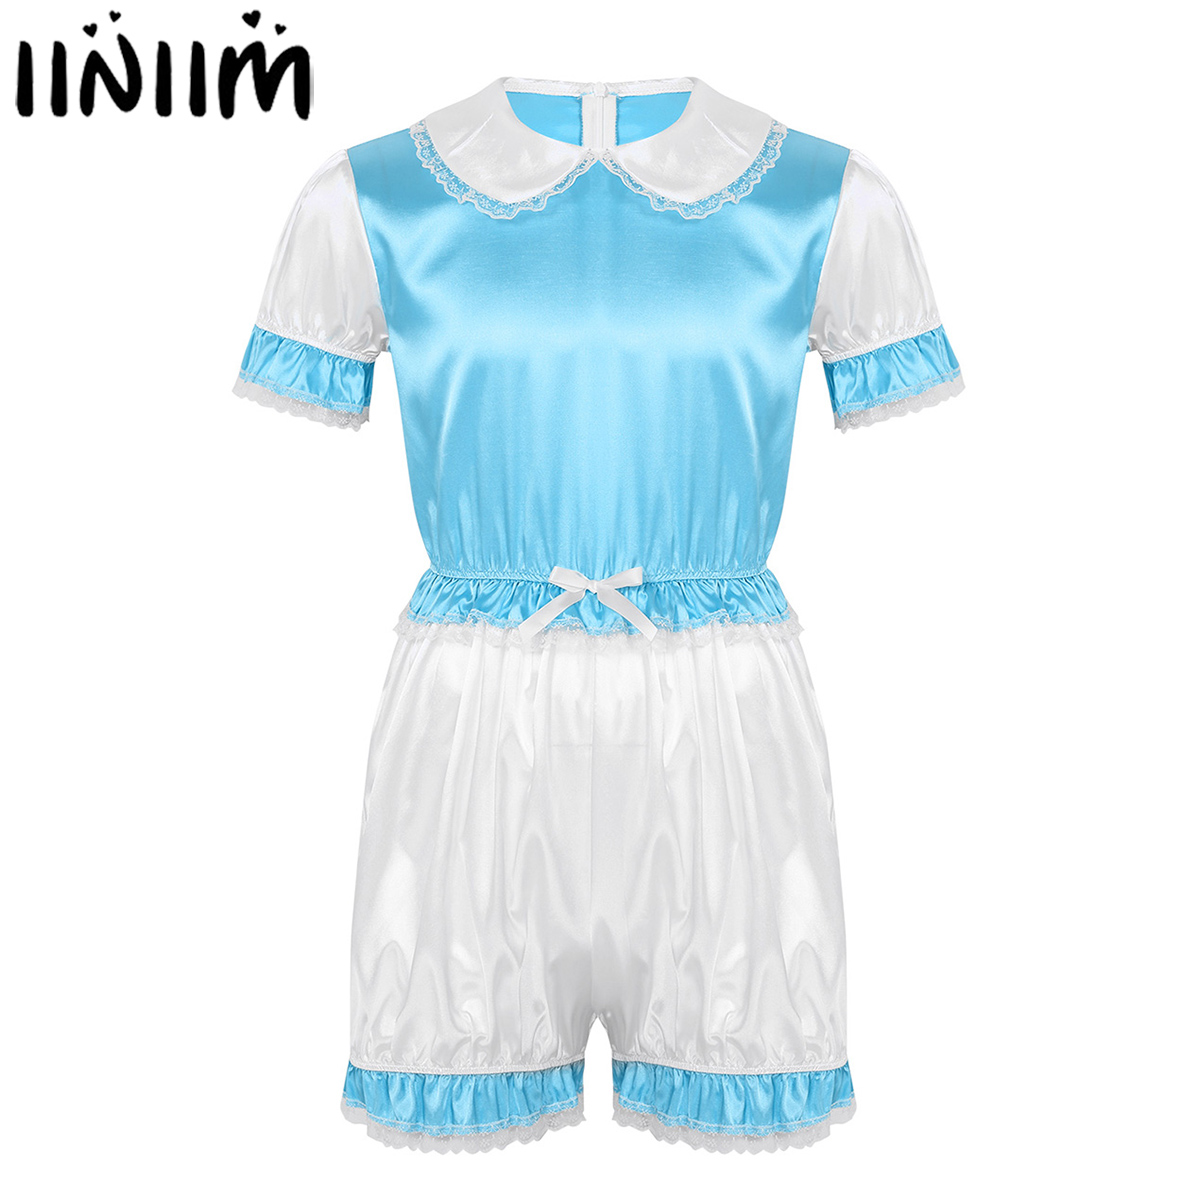 Iiniim Men Sissy Silky Satin Doll Collar Short Puff Sleeves Trimmed Lace Romper Adult Baby Cross Dresser Party Cosplay Costume